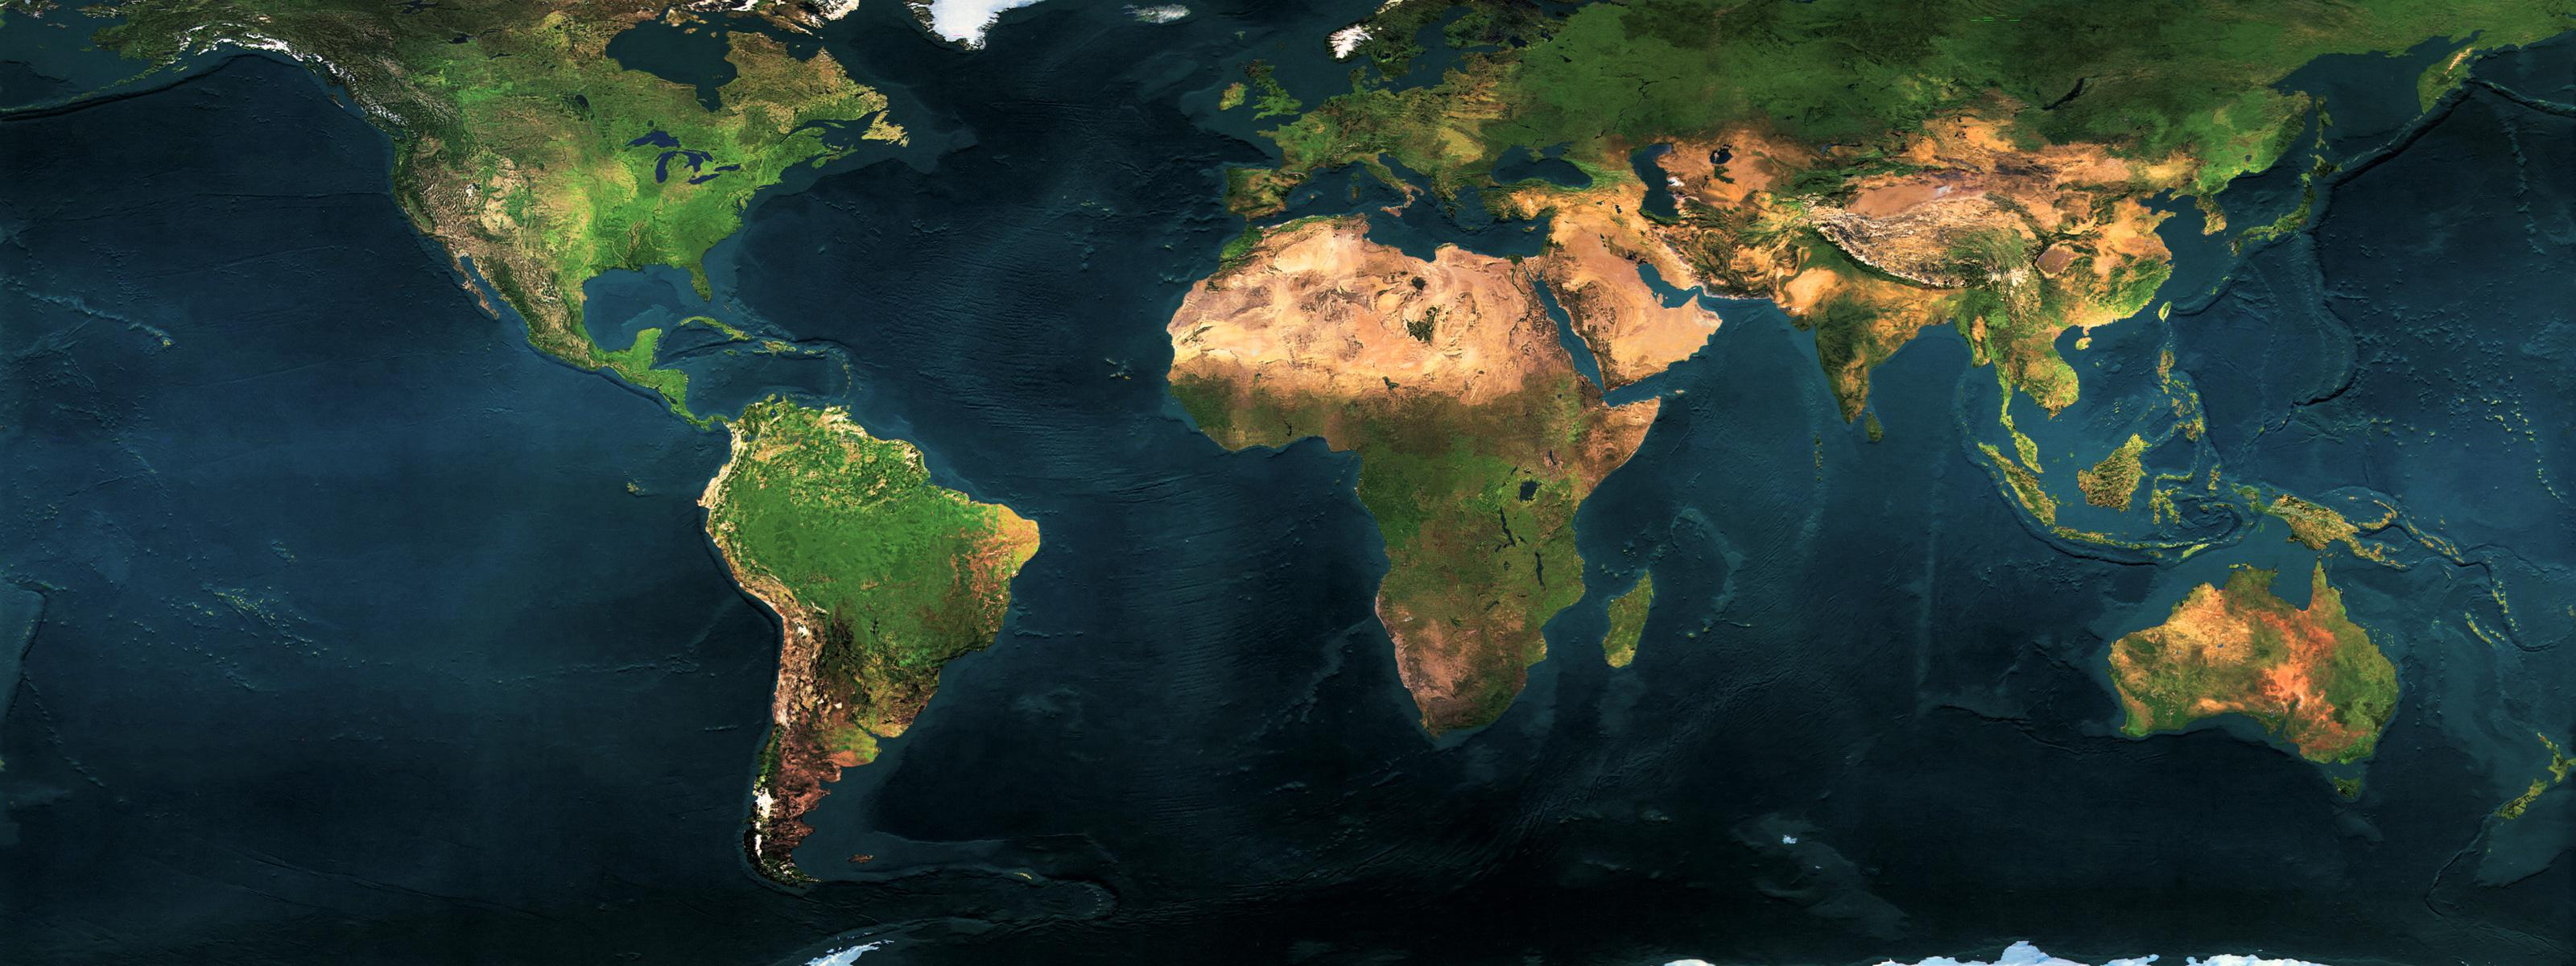 Earth map 3200x1200 view download gumiabroncs Choice Image